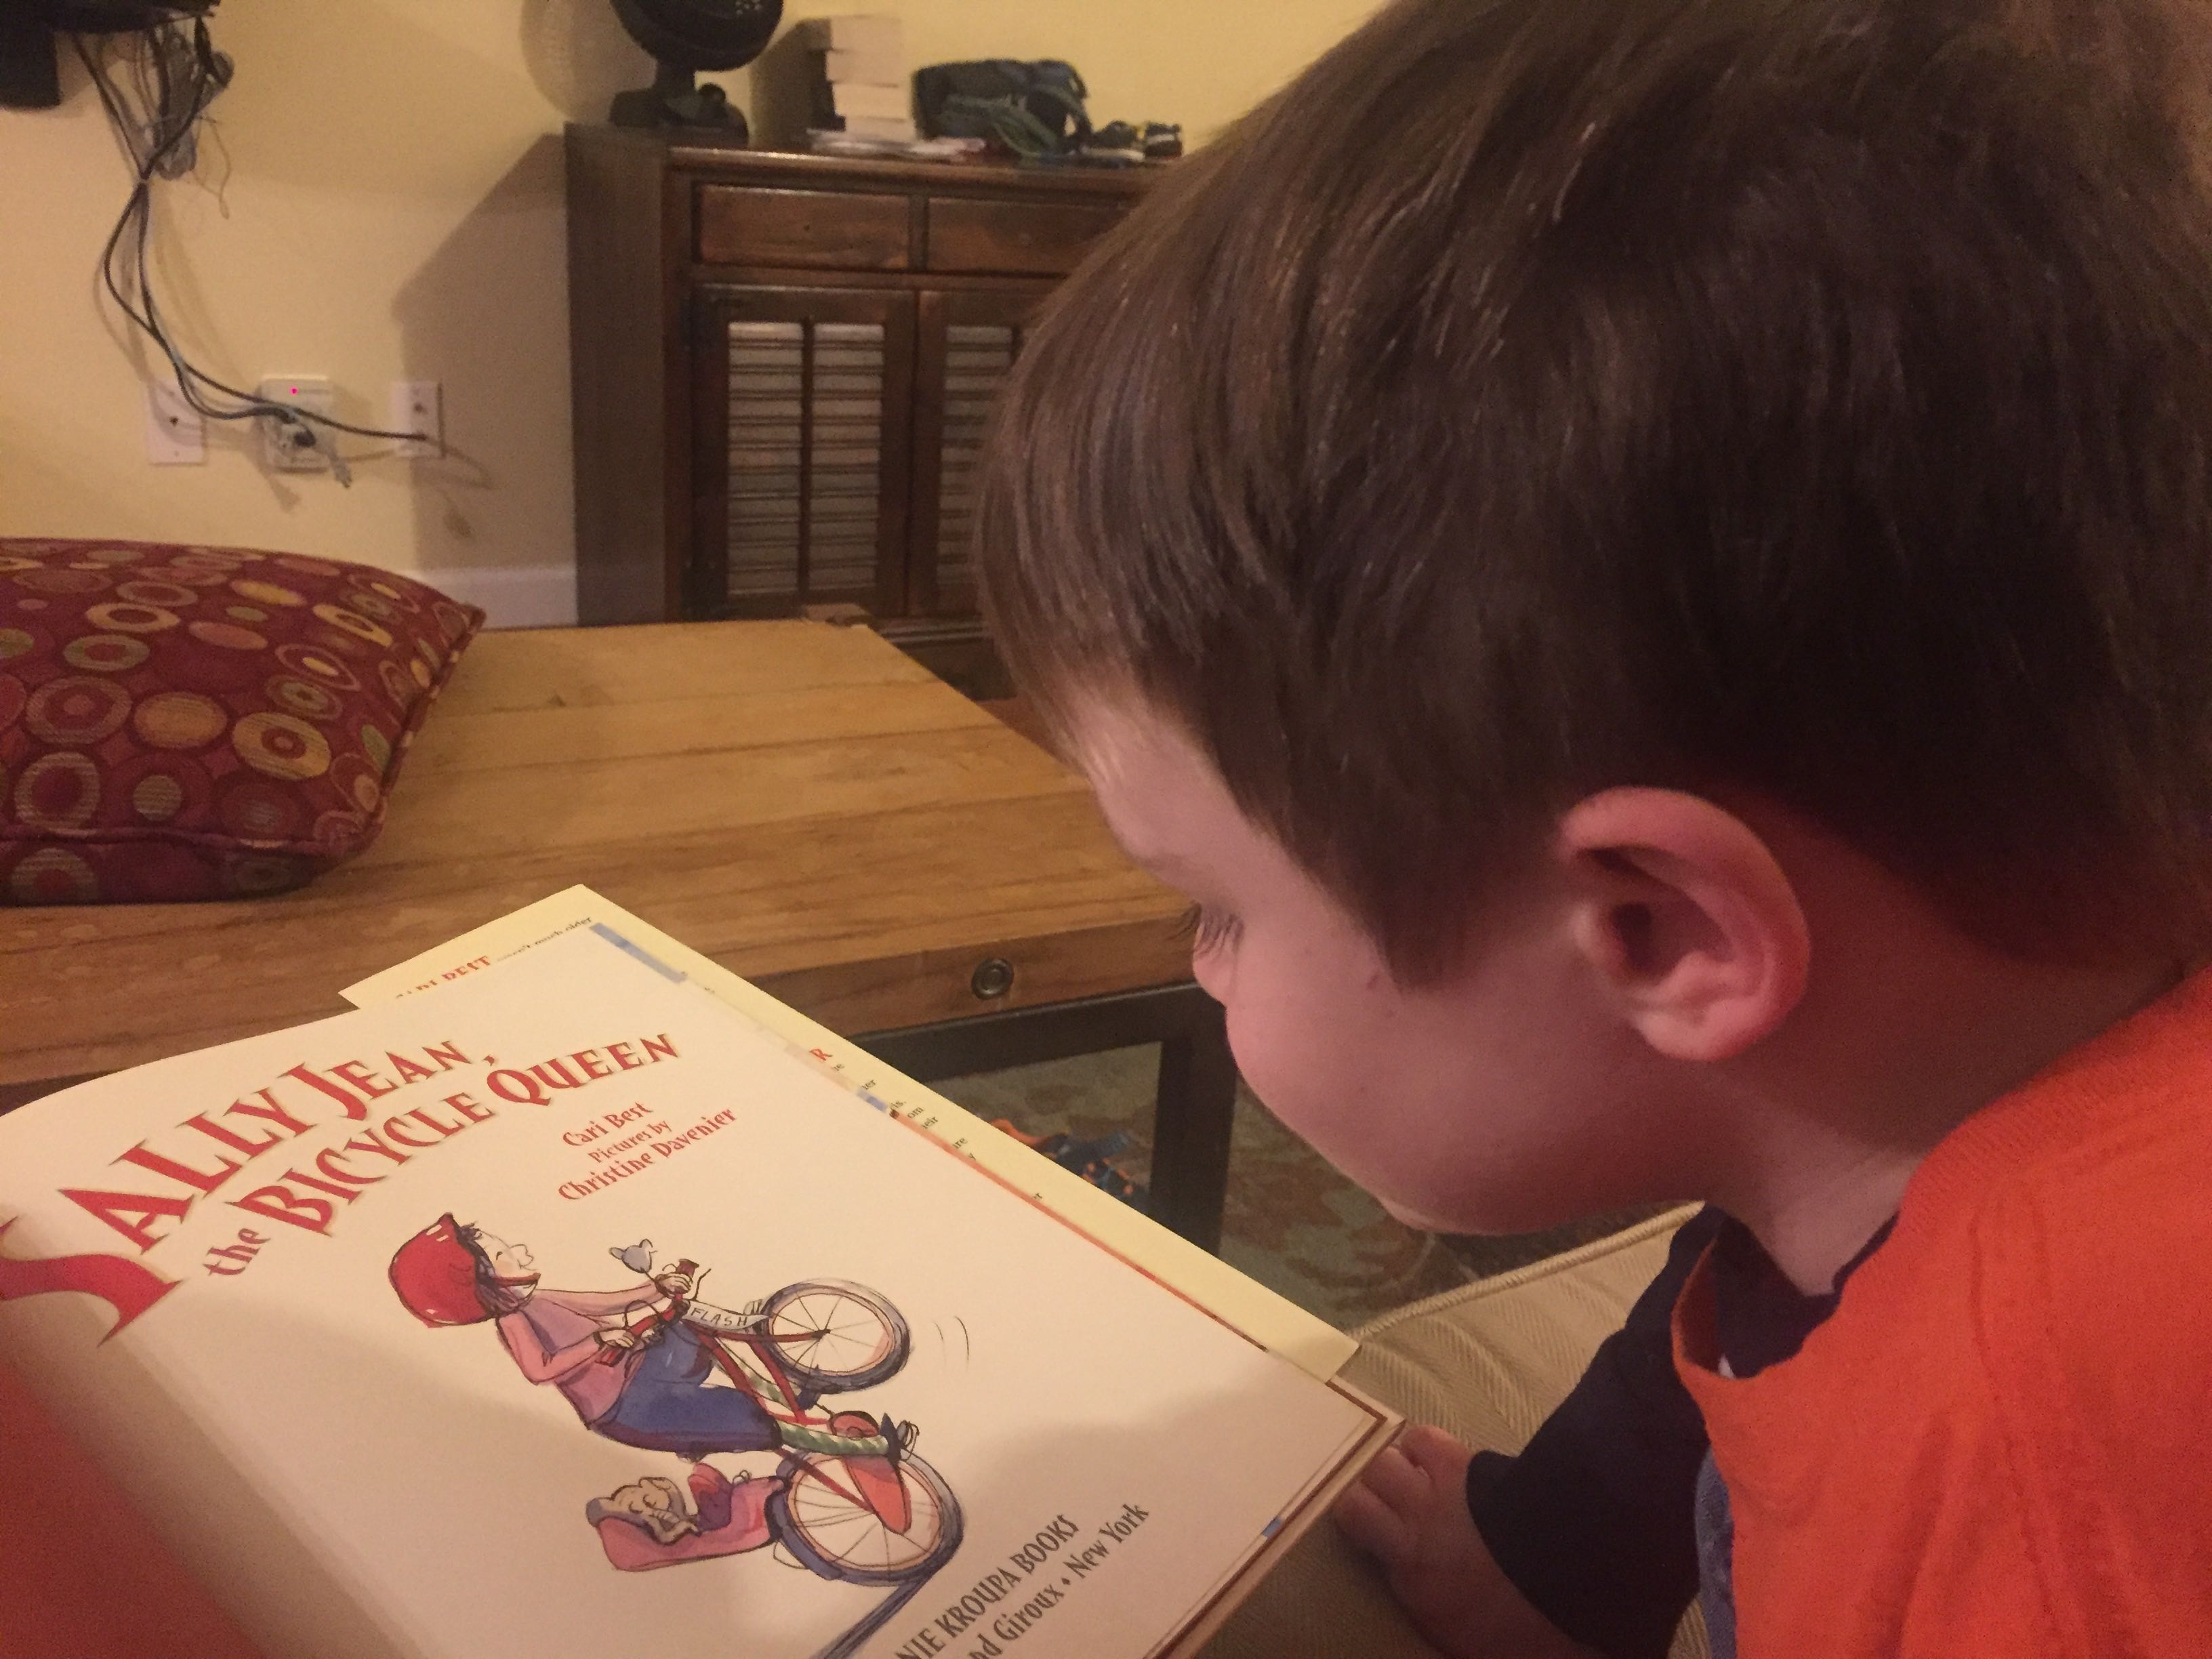 Four-year-old white boy reading a book with a girl on a bicycle on the front.